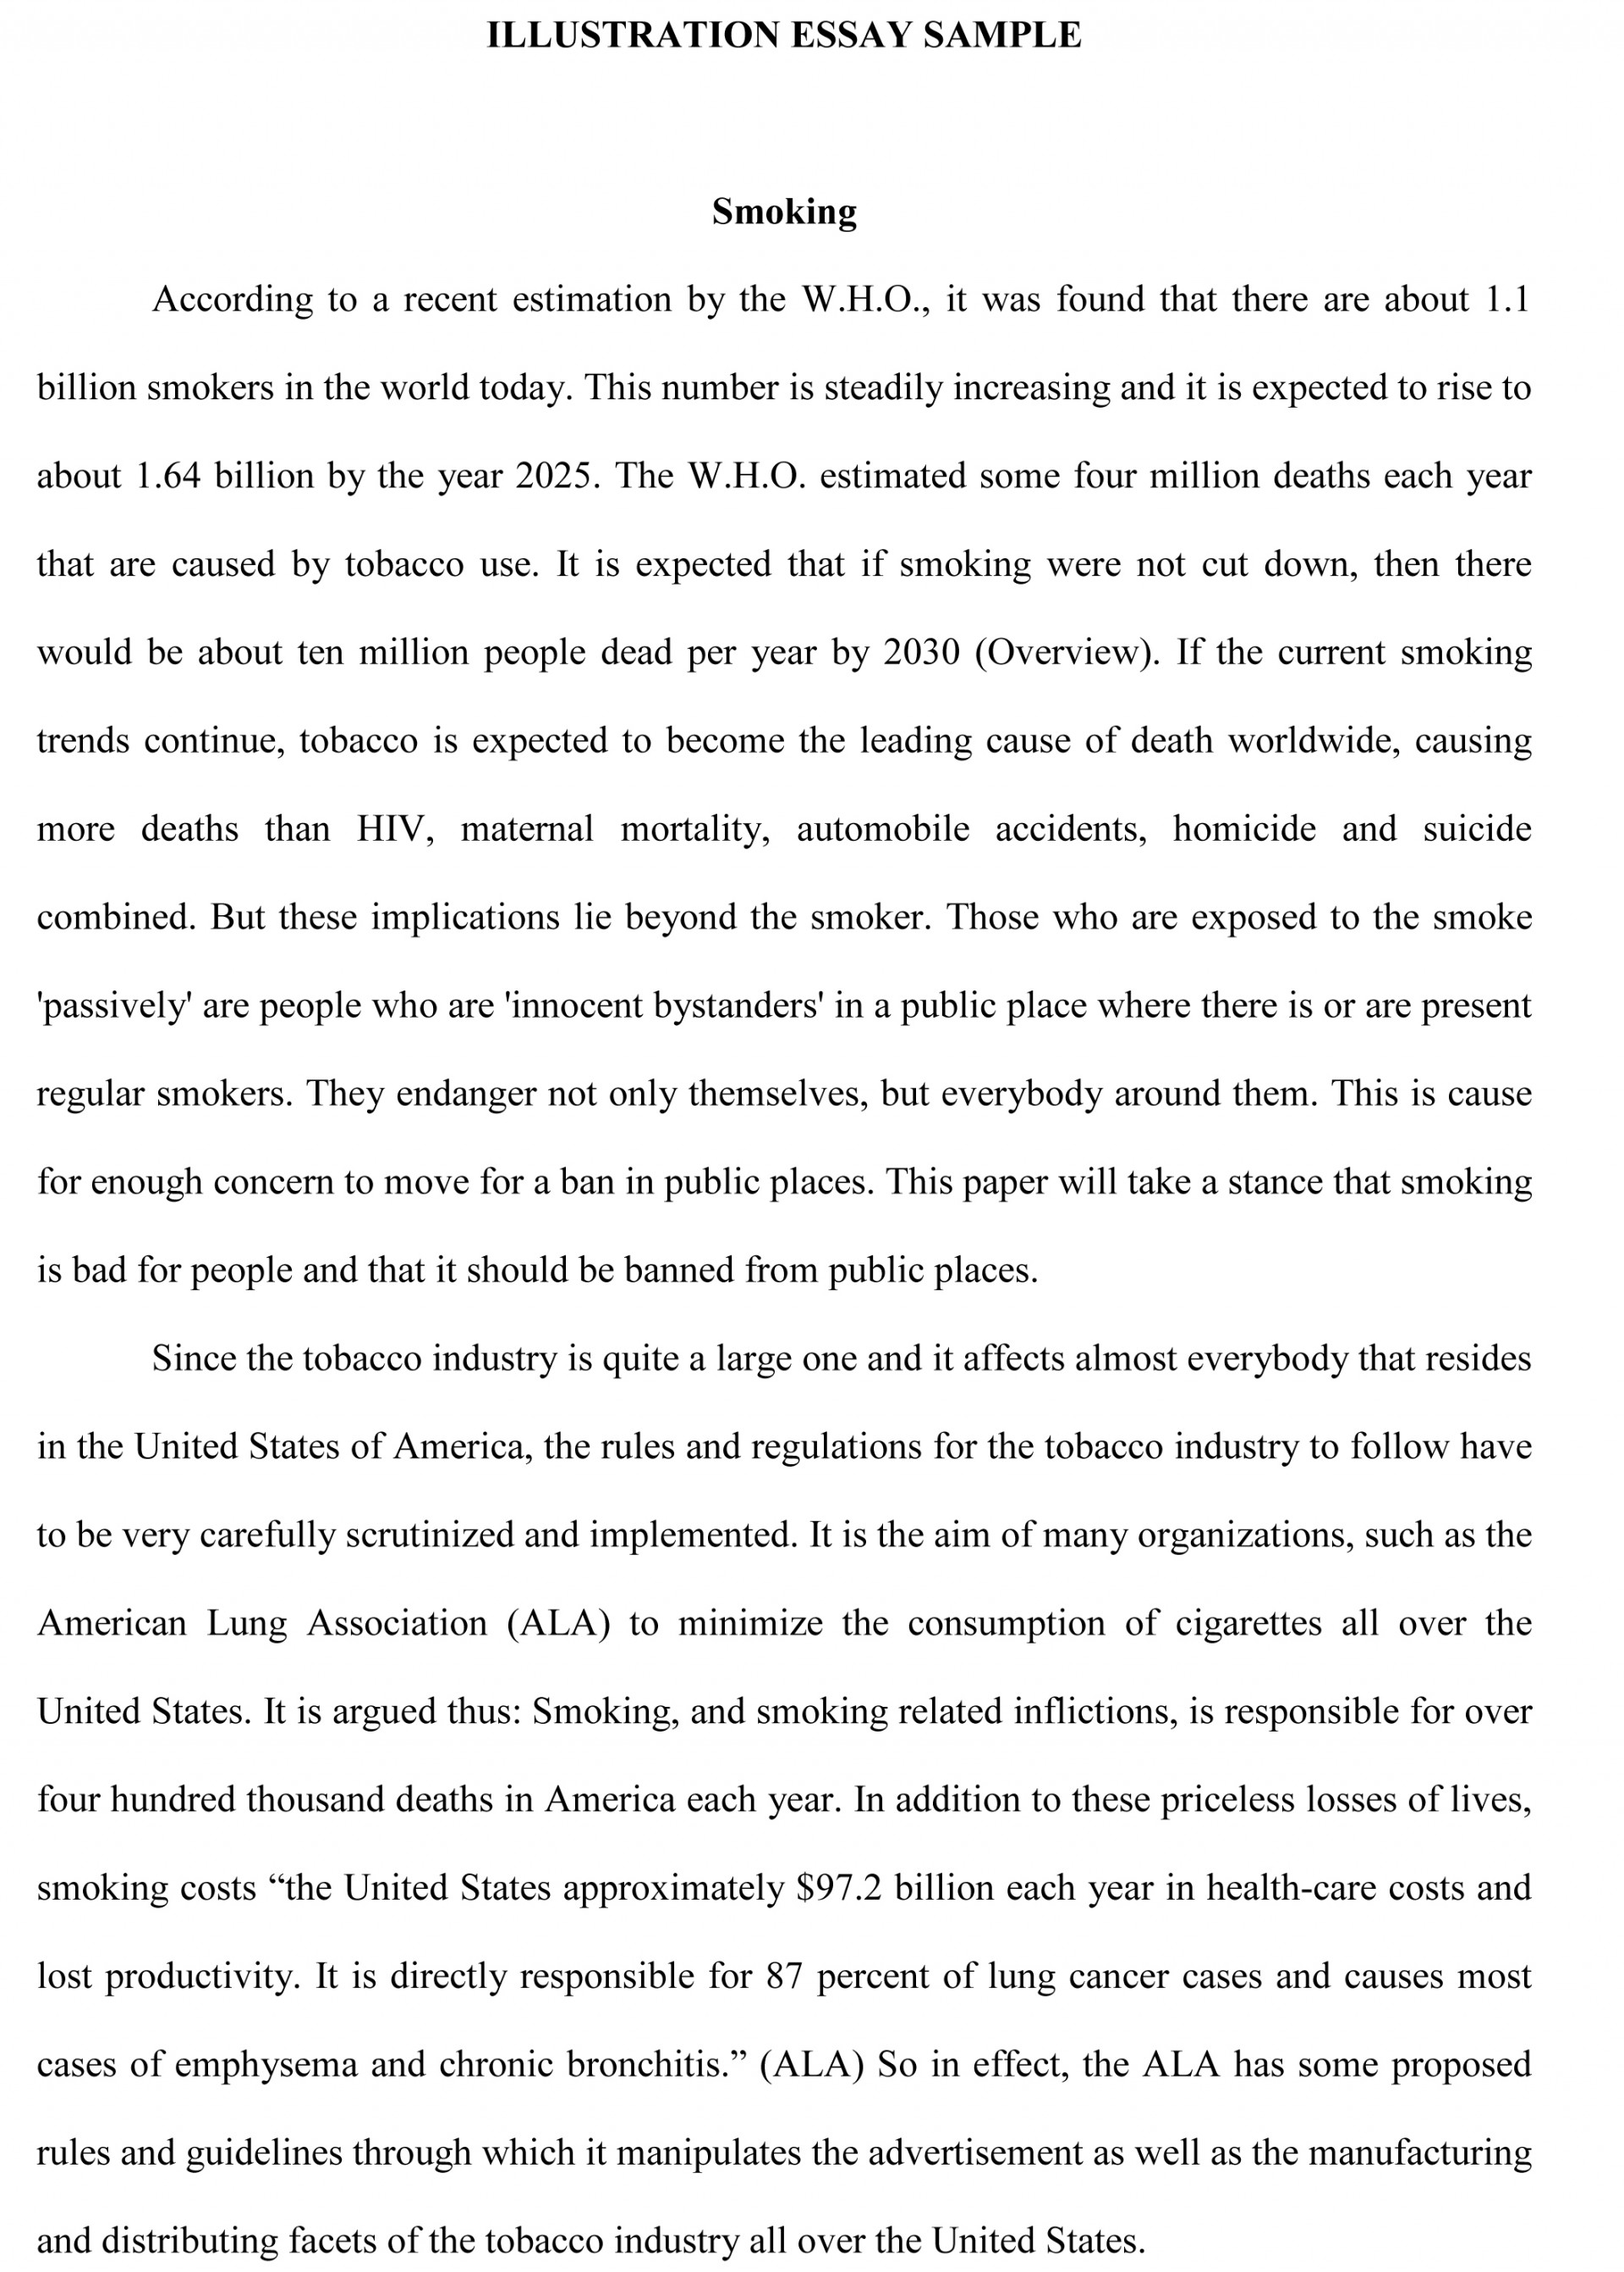 021 Illustration Essay Sample Example Descriptive Exceptional Topics Writing For Ibps Po Mains High School Students Prompts 1920